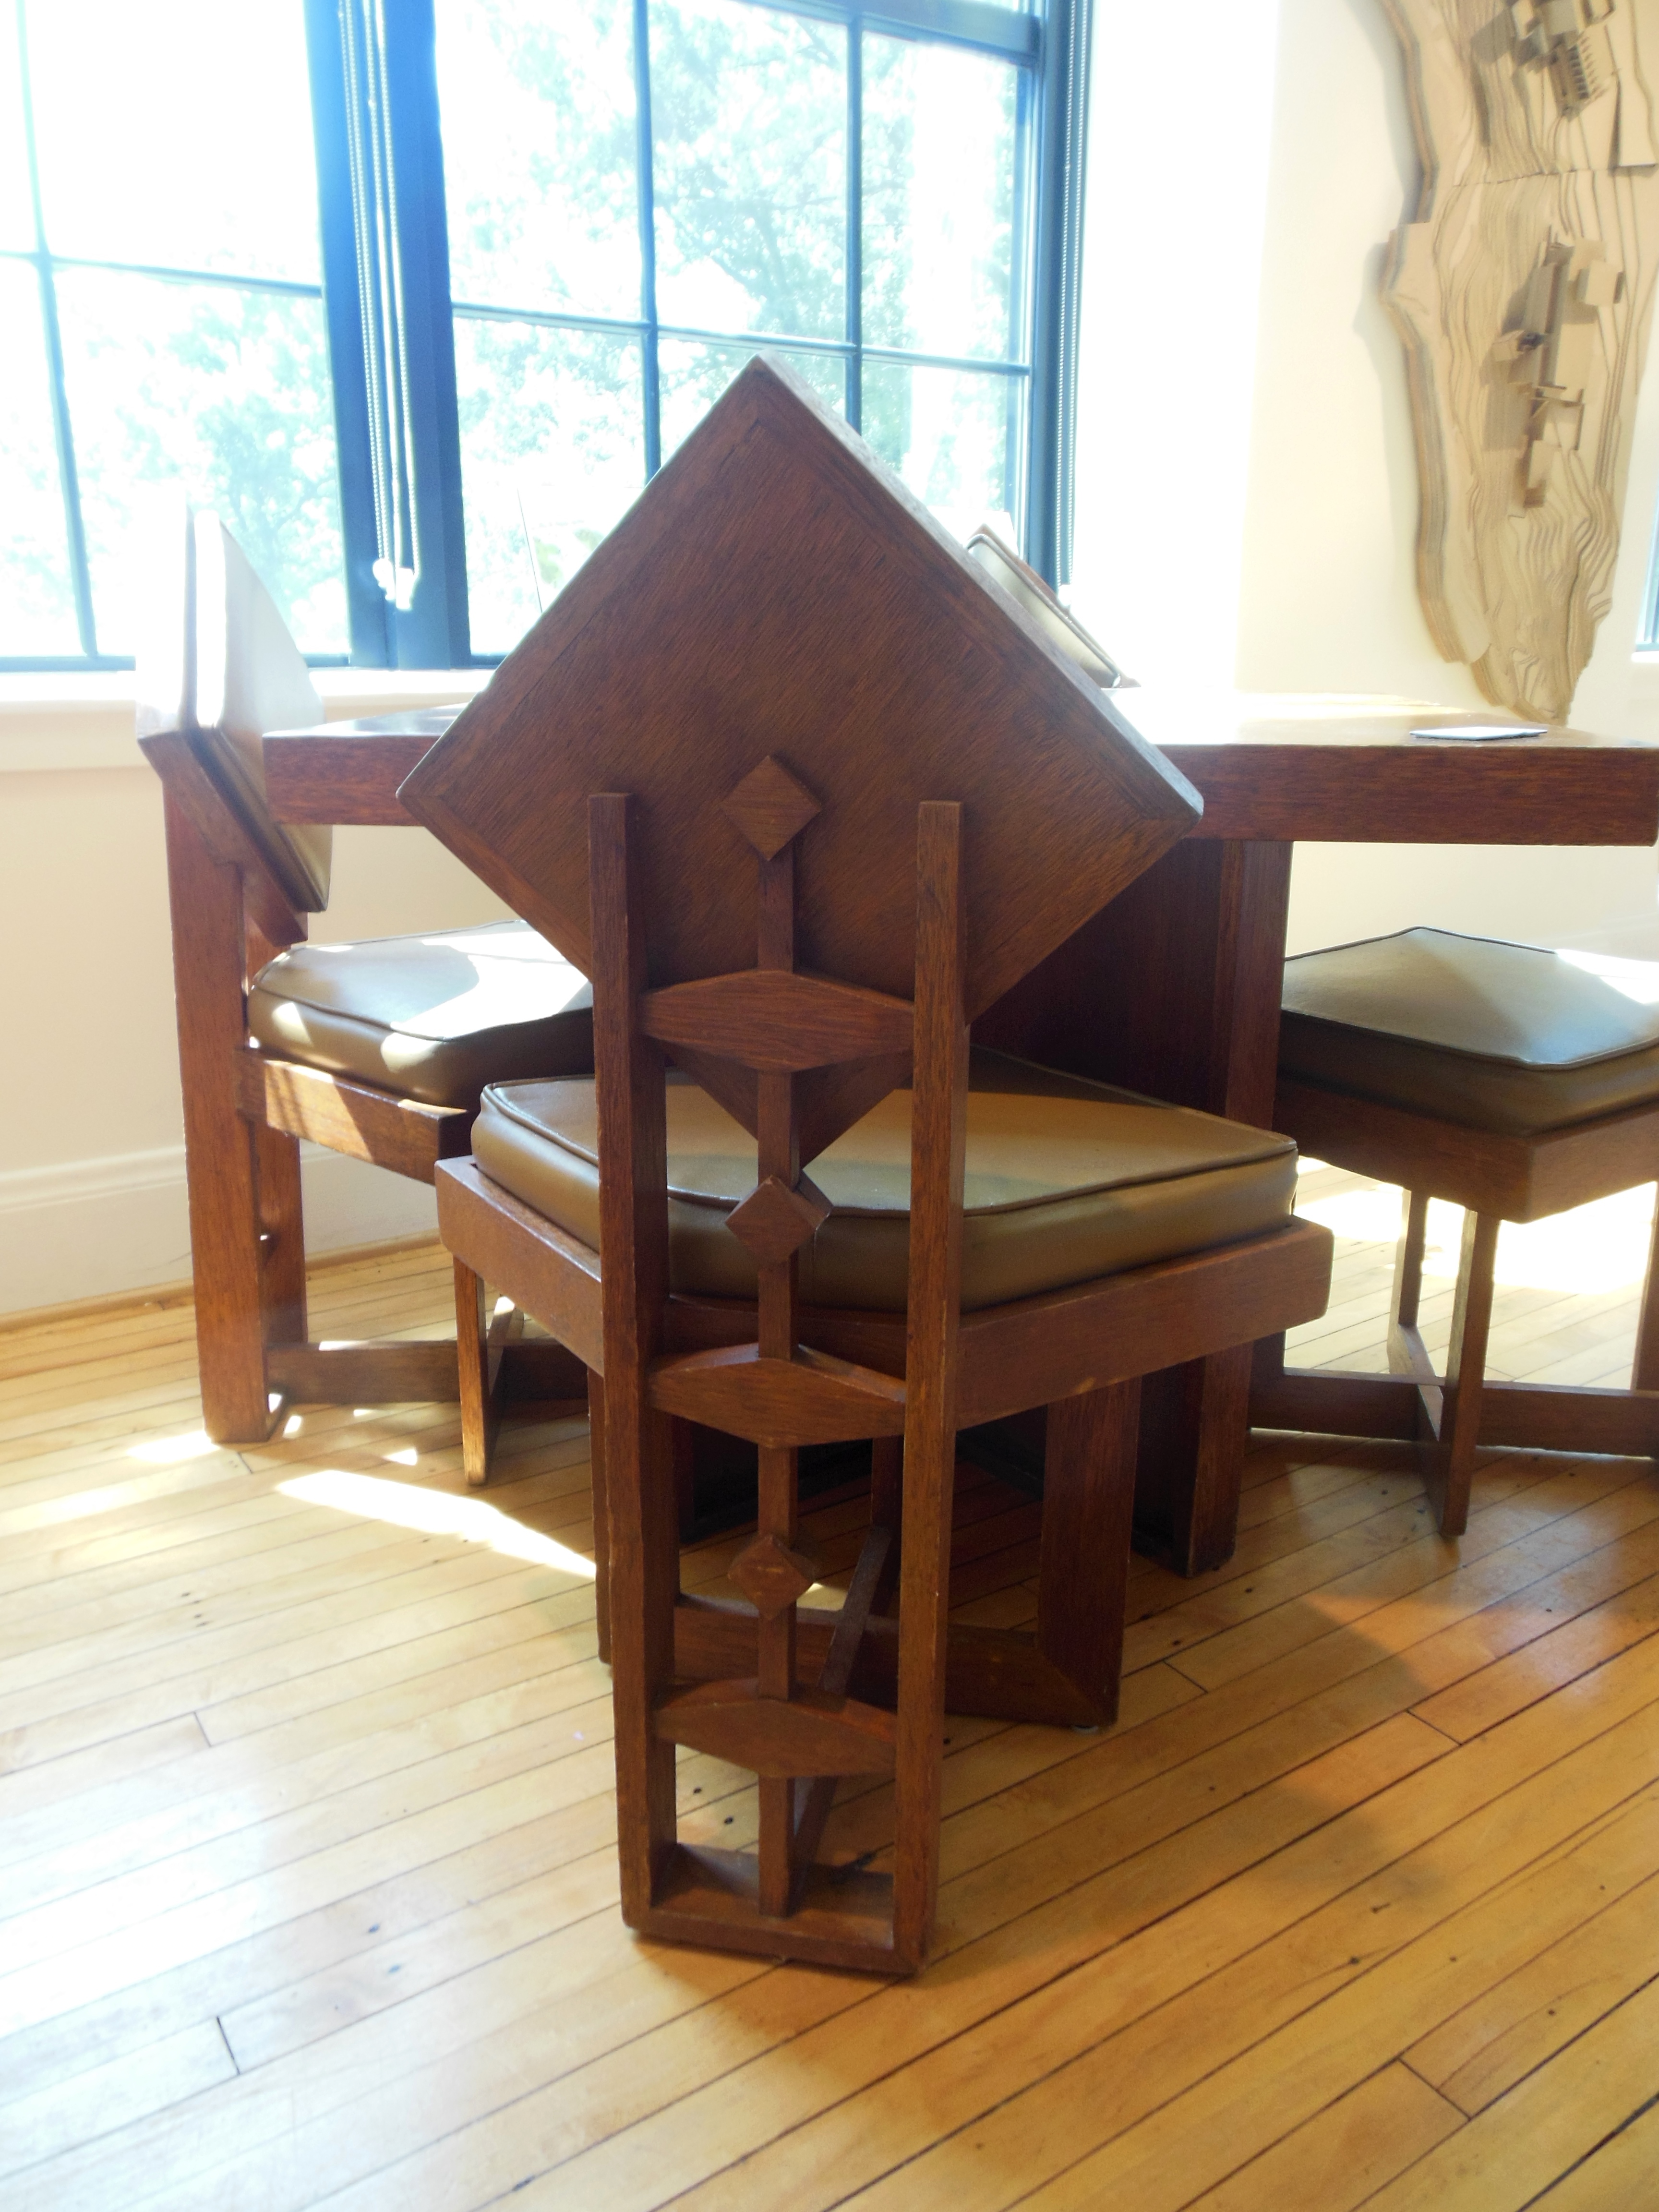 Incroyable Table And Chairs Designed By Theodore Van Fossen For Wakefield Home, Rush  Creek Village